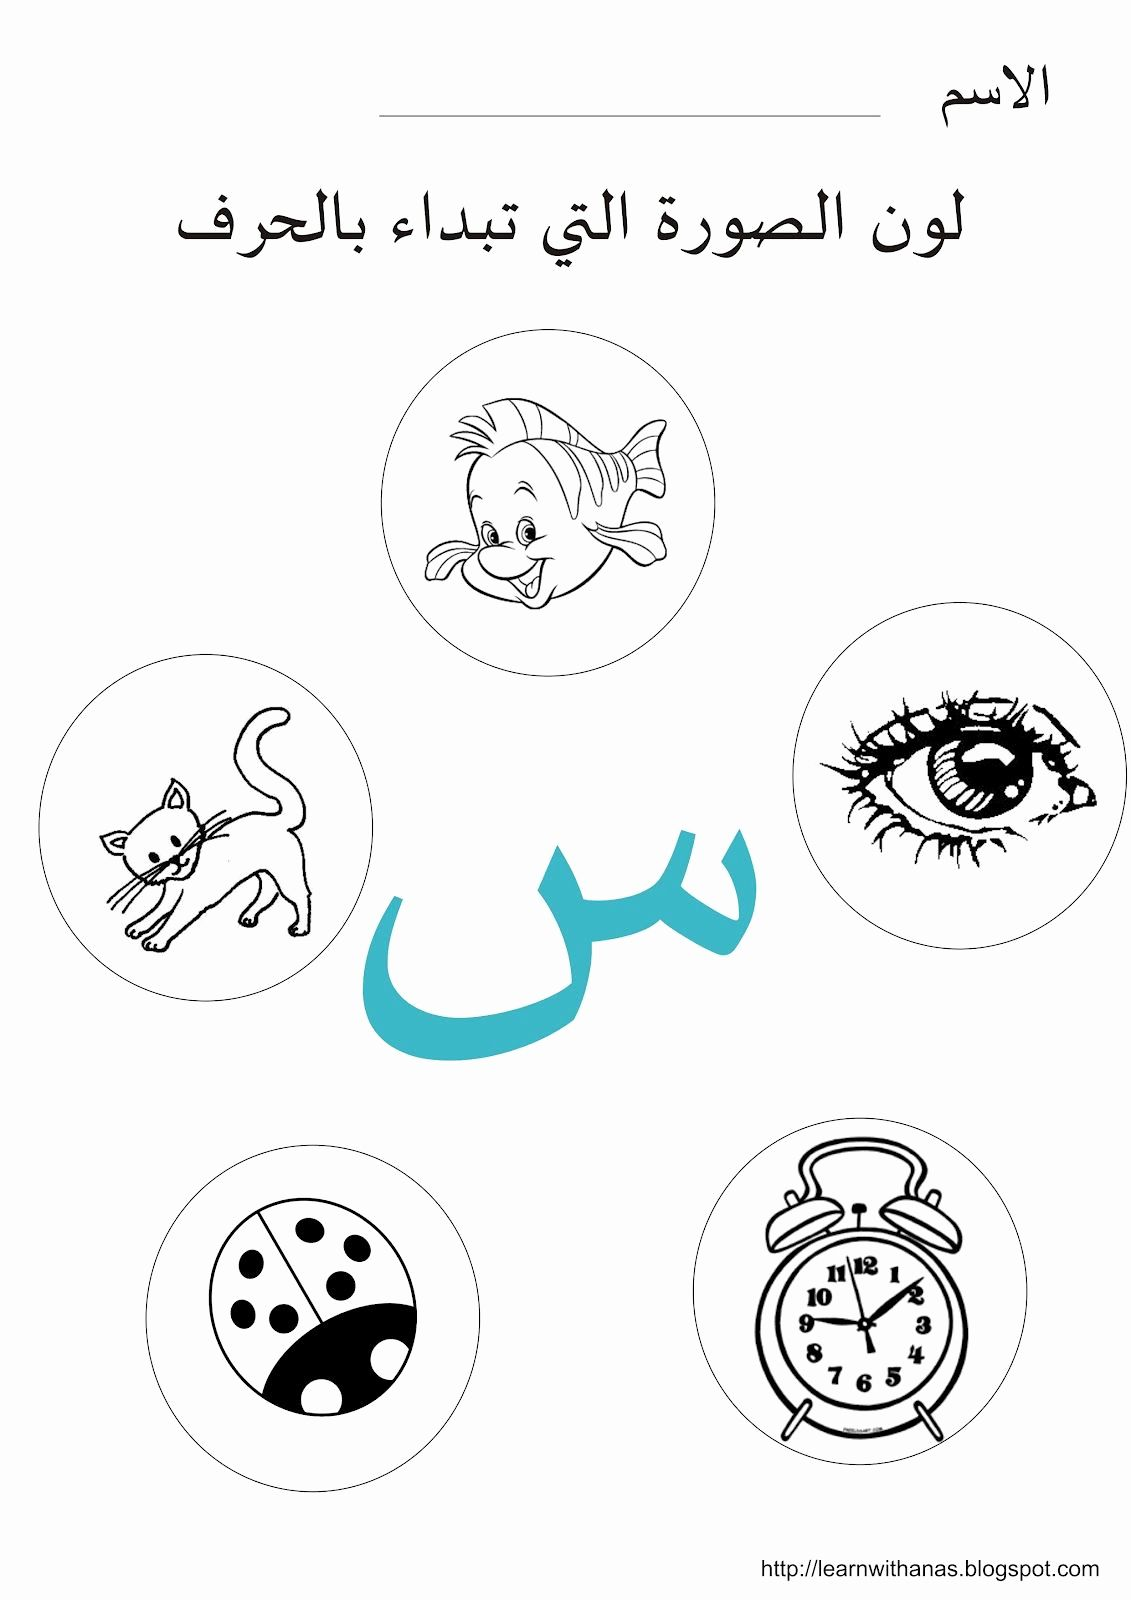 Coloring Arabic Alphabet Best Of U A U A A U